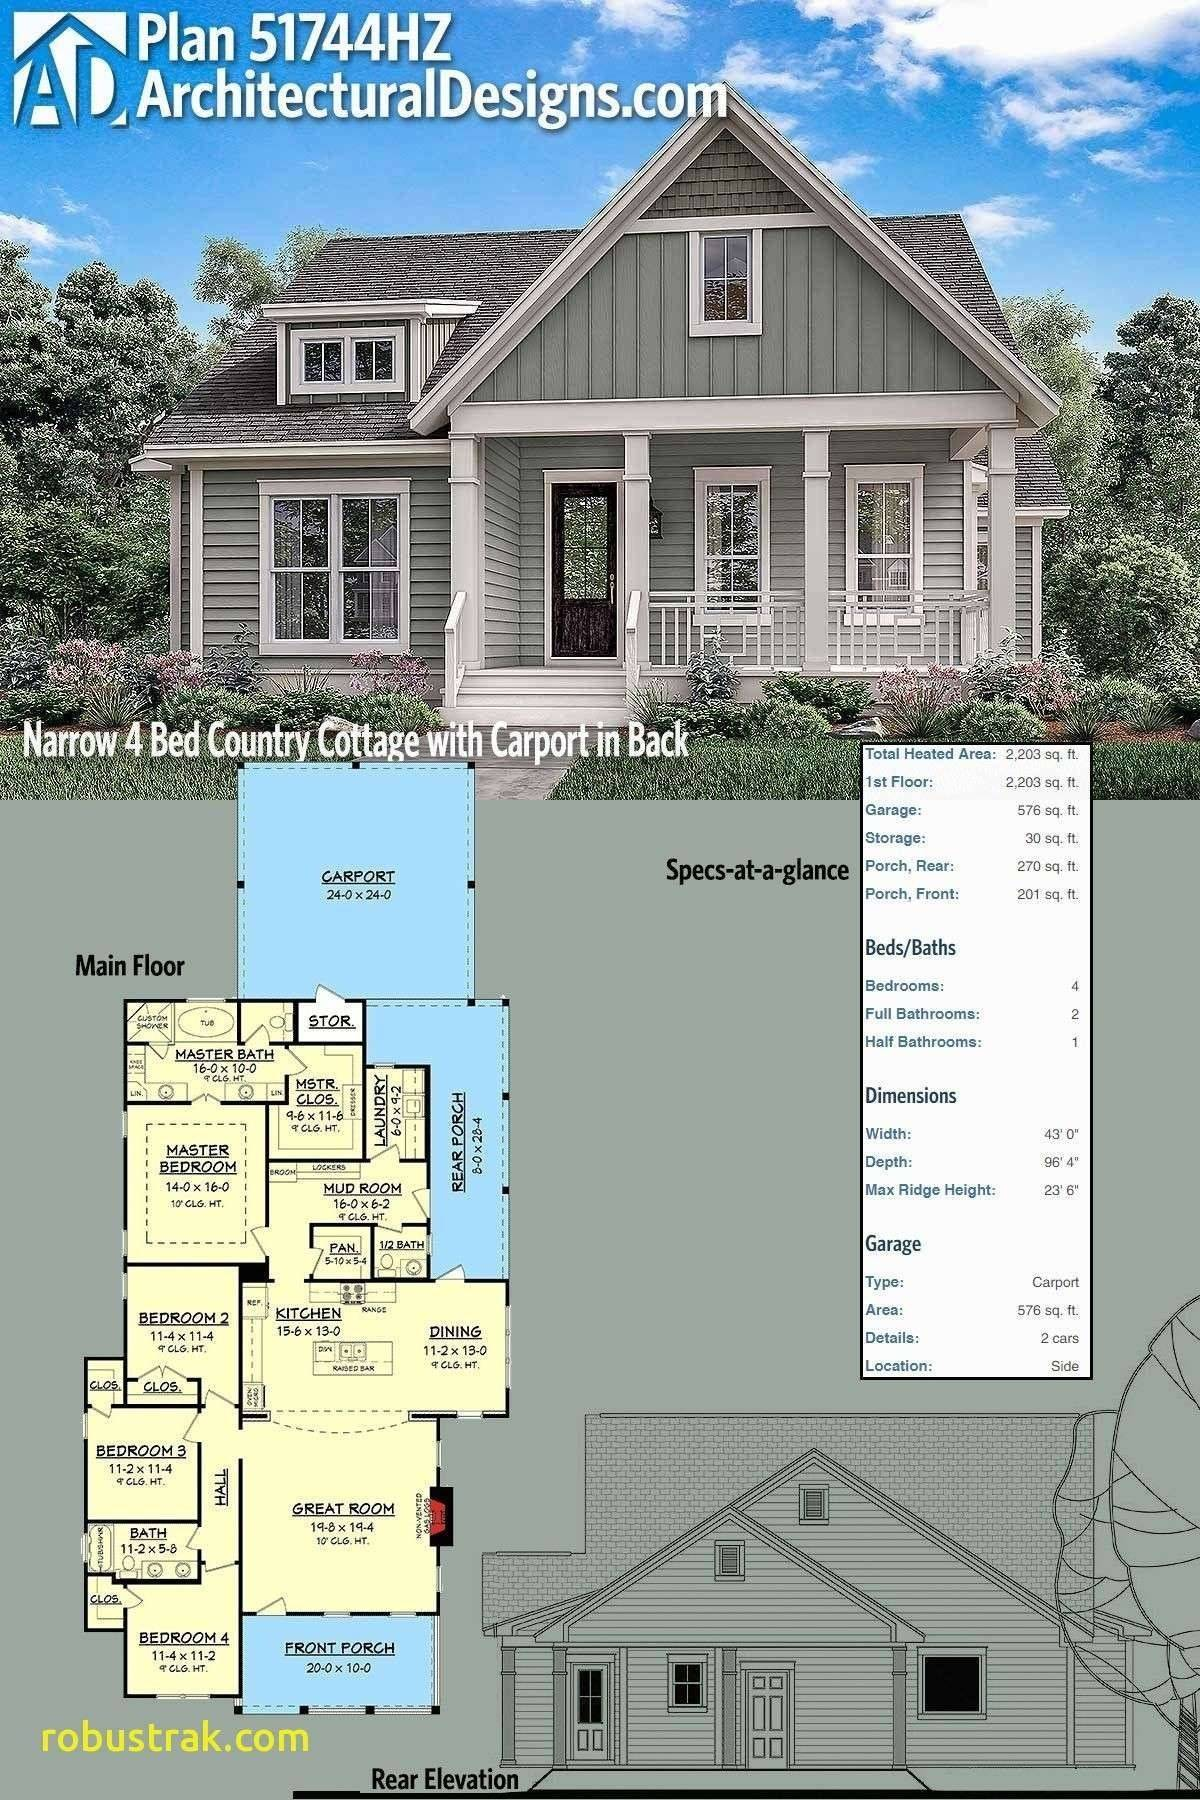 interior pictures of modular homes luxury homes luxury modular homes plans luxury country homes plans fresh home plans 0d